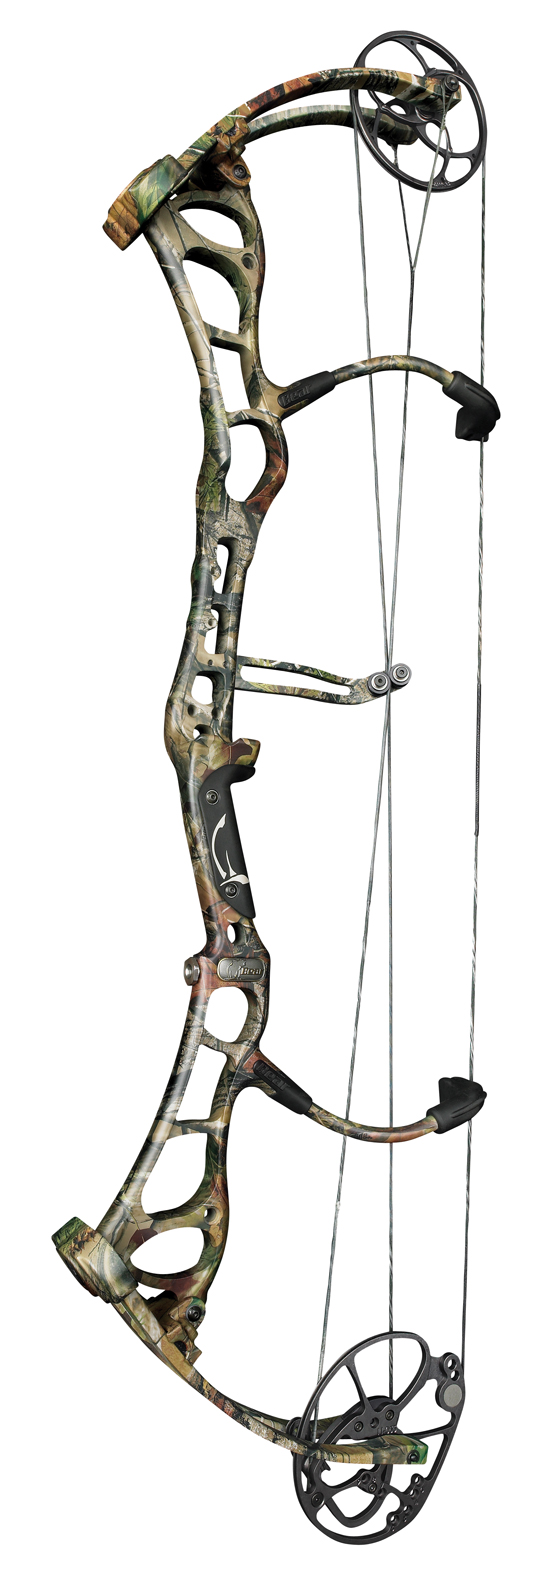 Bow openers are just around the corner and any one of these new bows would get the job done when